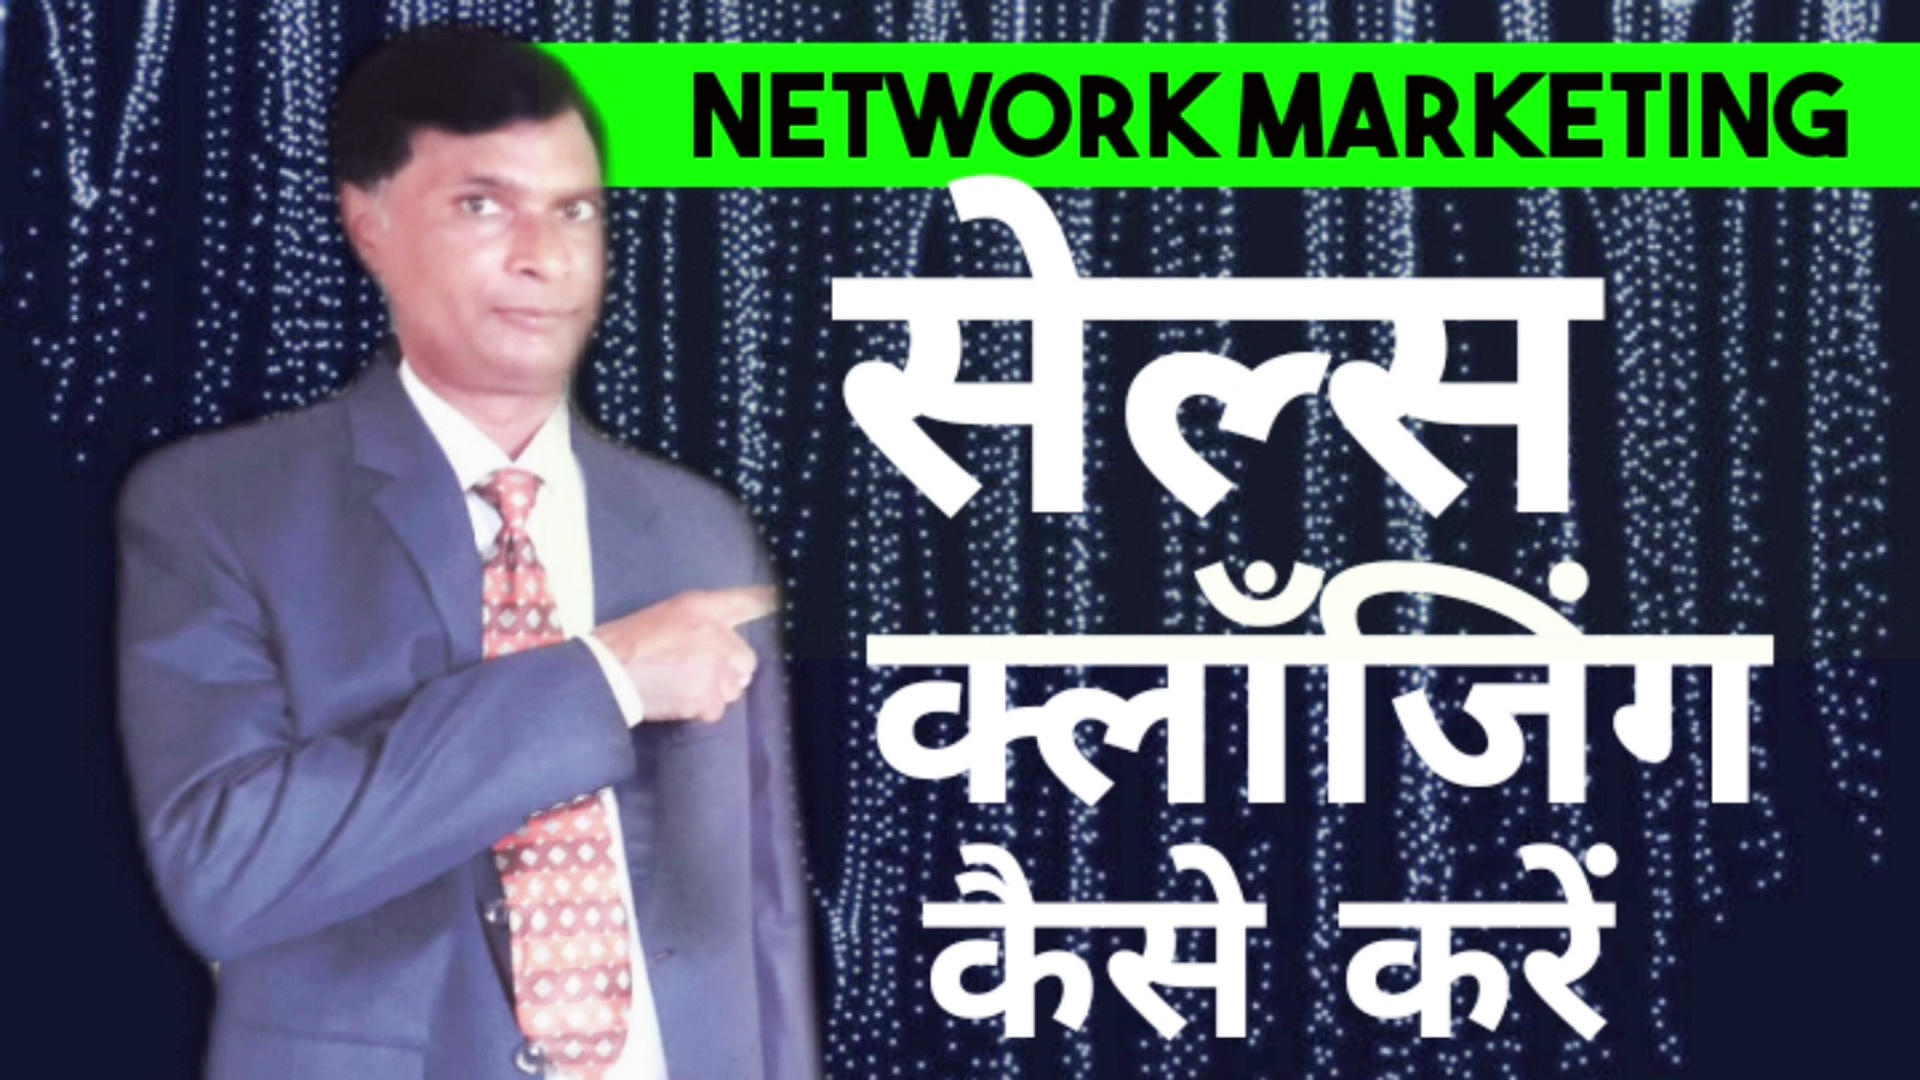 sales closing technique |how to close sale in network marketing| joiinng technique  in NETWORK MARKETING |sales closing tips in network marketing| नेटवर्क मार्केटिंग मे  सेल्स कjoining